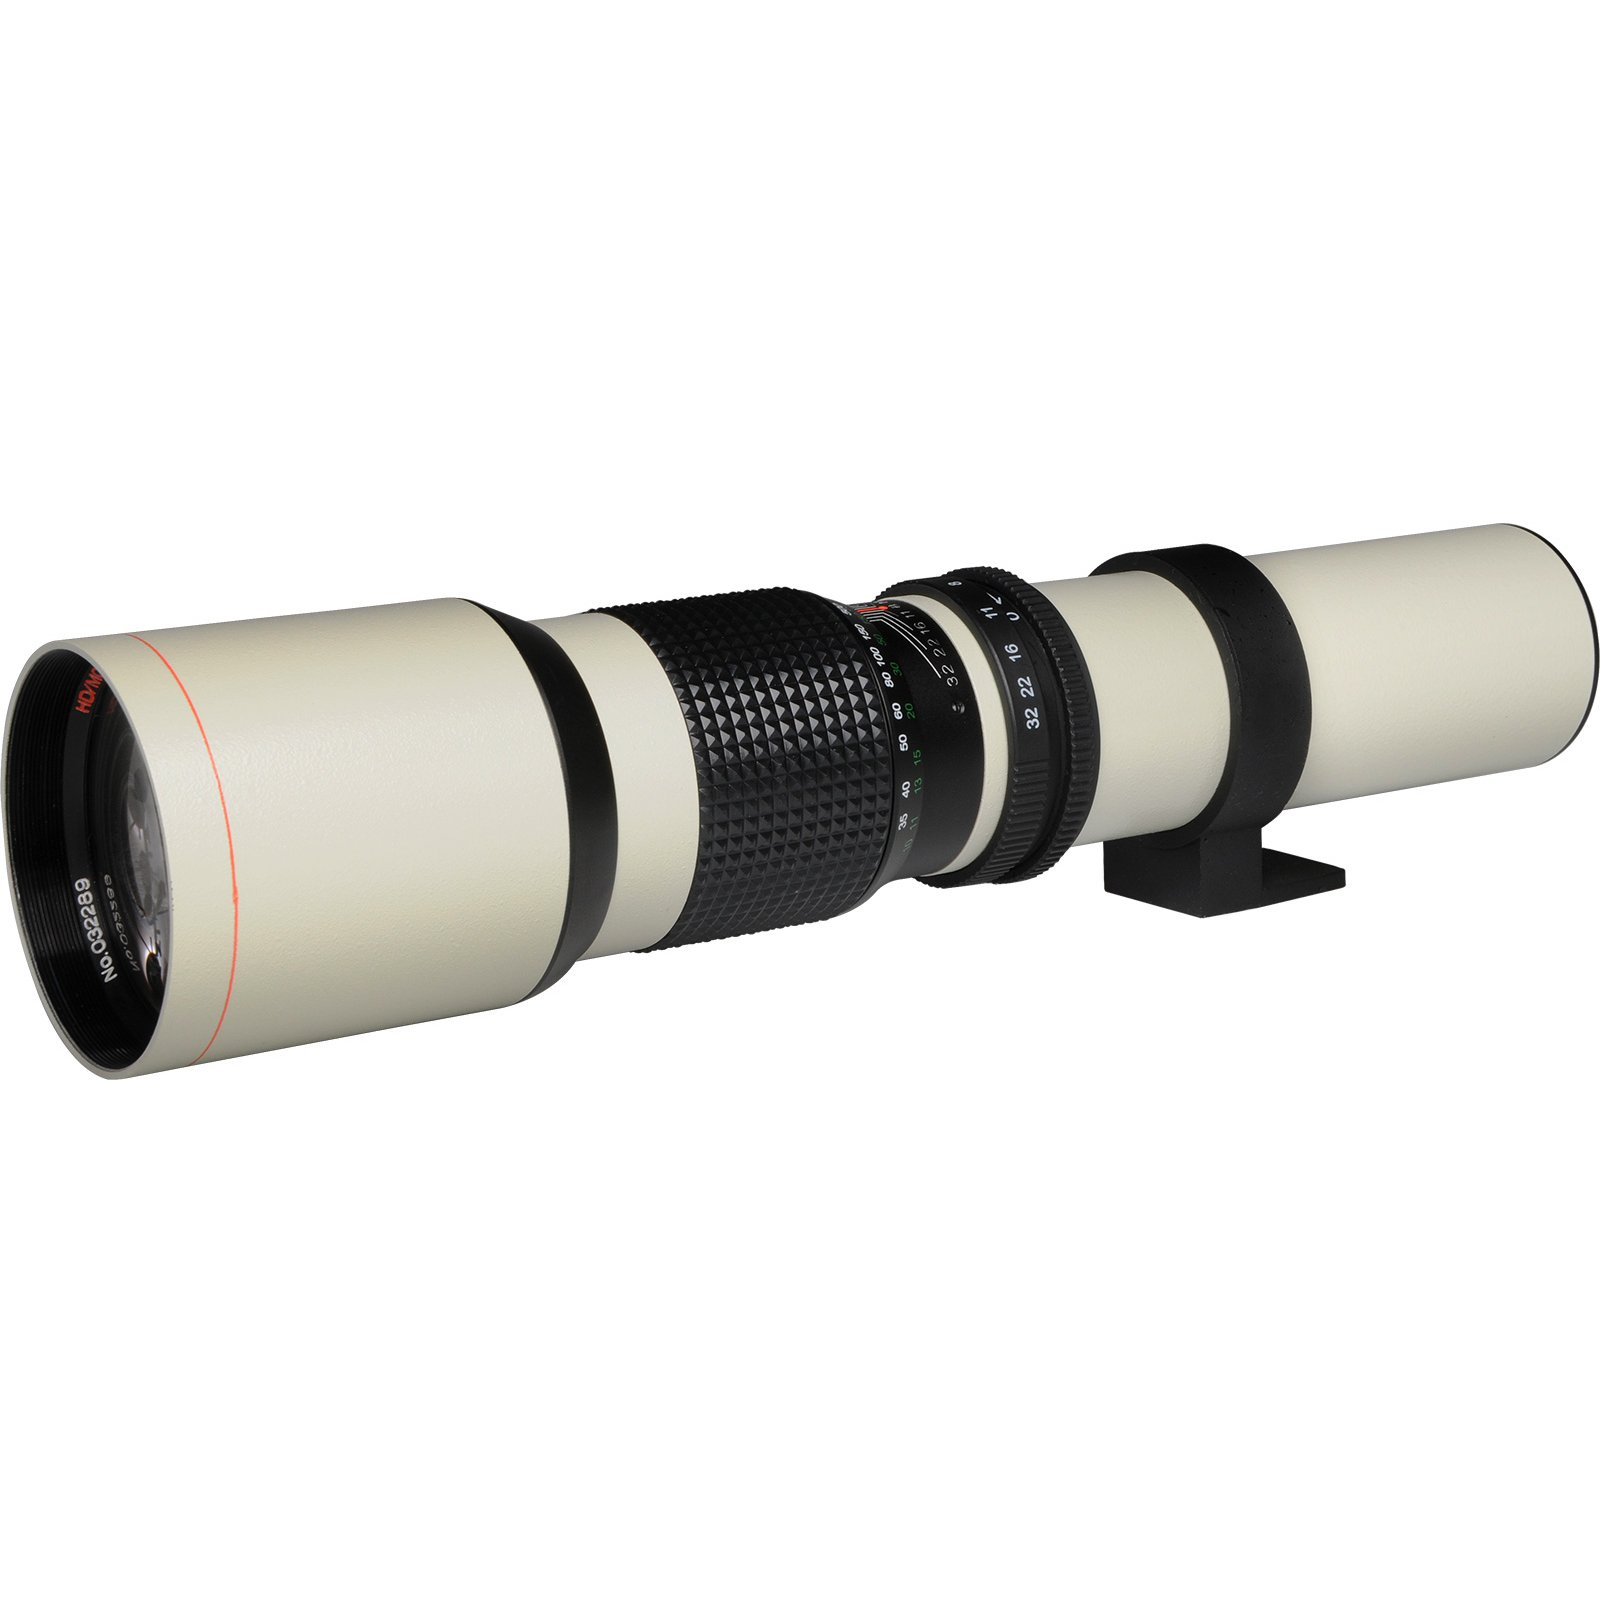 Vivitar 500mm f/8.0 Telephoto Lens (T Mount) (White) with 2X Teleconverter (=1000mm) + EN-EL14 Battery + Monopod + Kit for D3300, D3400, D5300, D5500, D5600 by Vivitar (Image #2)